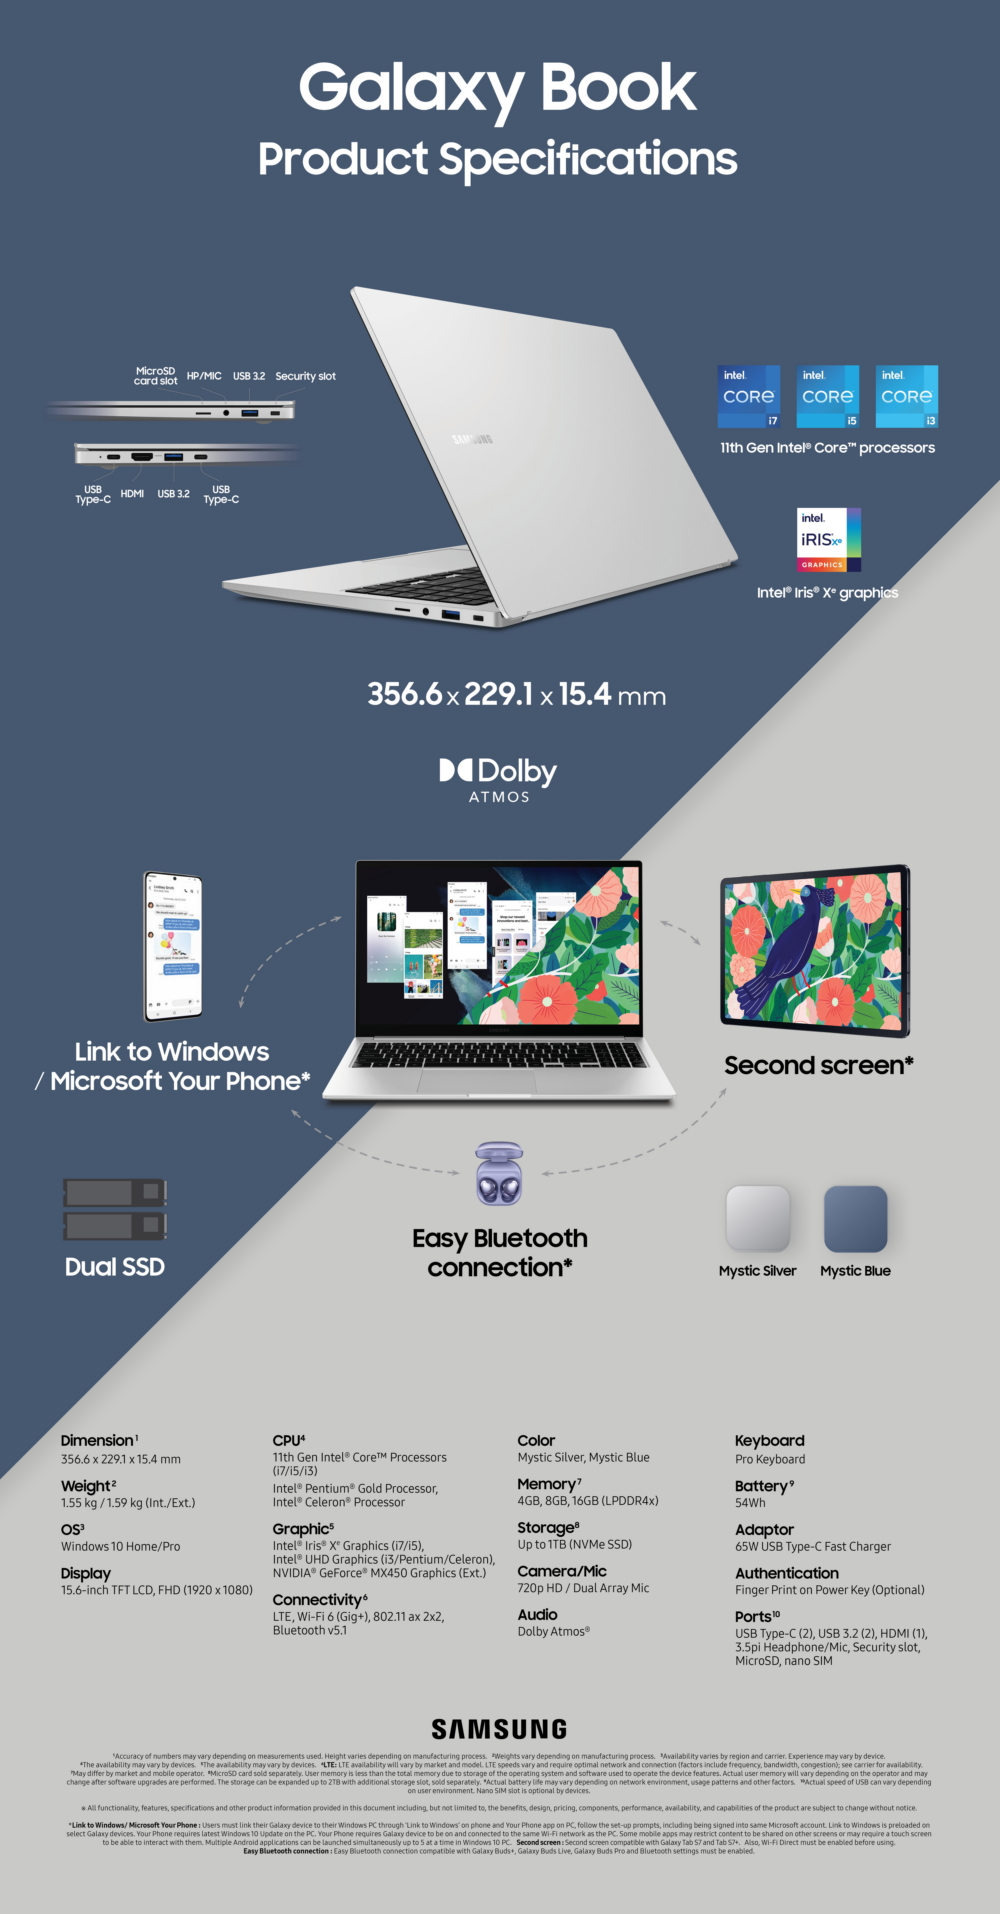 [Infographic] Enjoy All-Day Productivity and Connectivity With the Galaxy Book and Galaxy Book Odyssey - Image 2